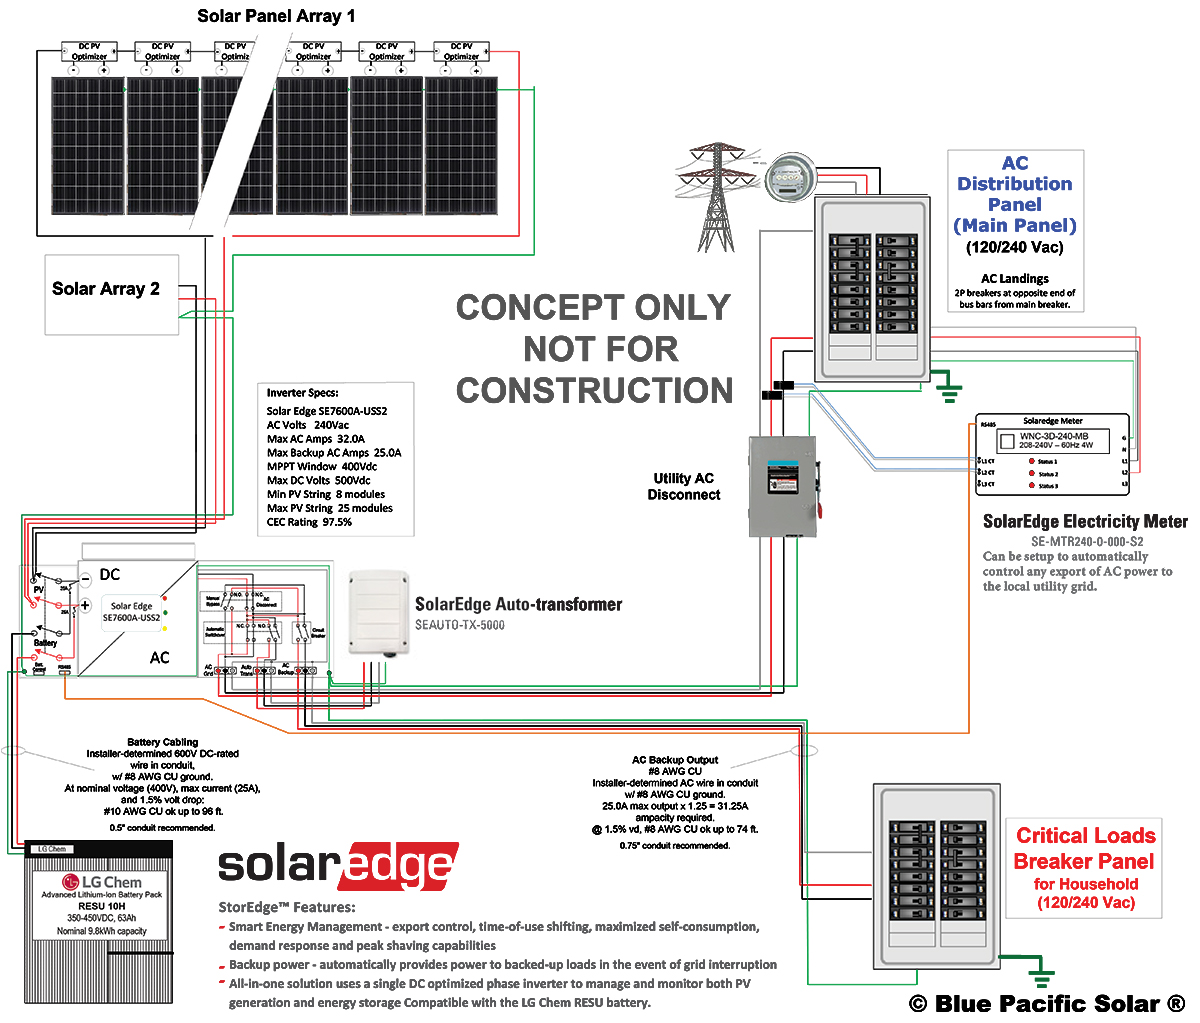 three line solar diagram 2009 kia rio stereo wiring solaredge storedge 14 4 kw kit 300w solarworld